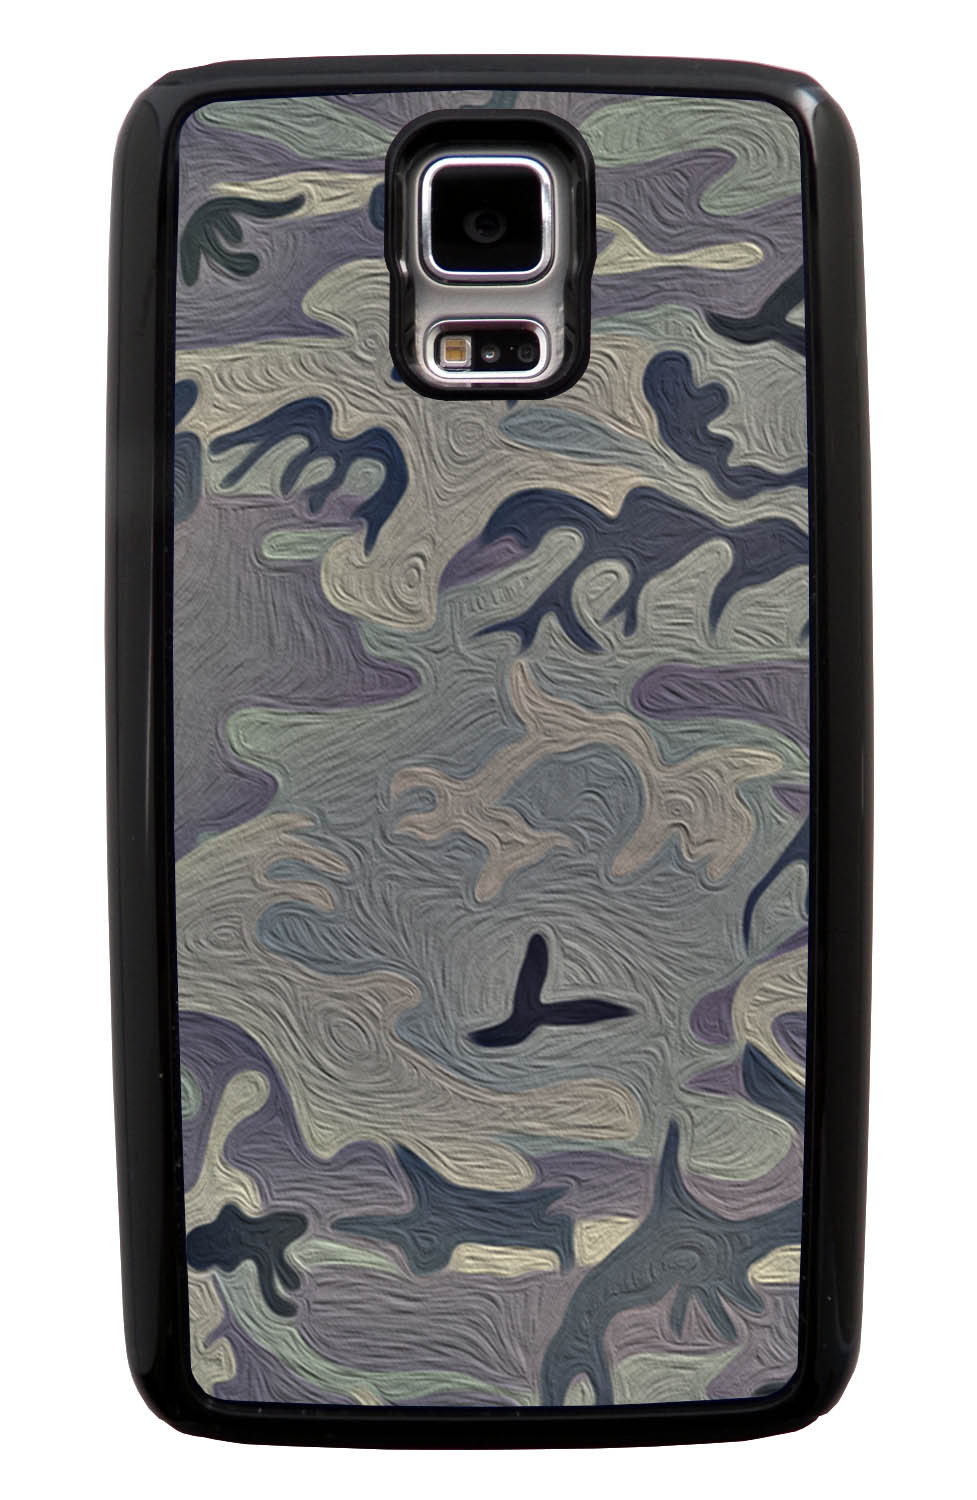 Samsung Galaxy S5 / SV Camo Case - Painted Urban Colors - Woodland - Black Tough Hybrid Case